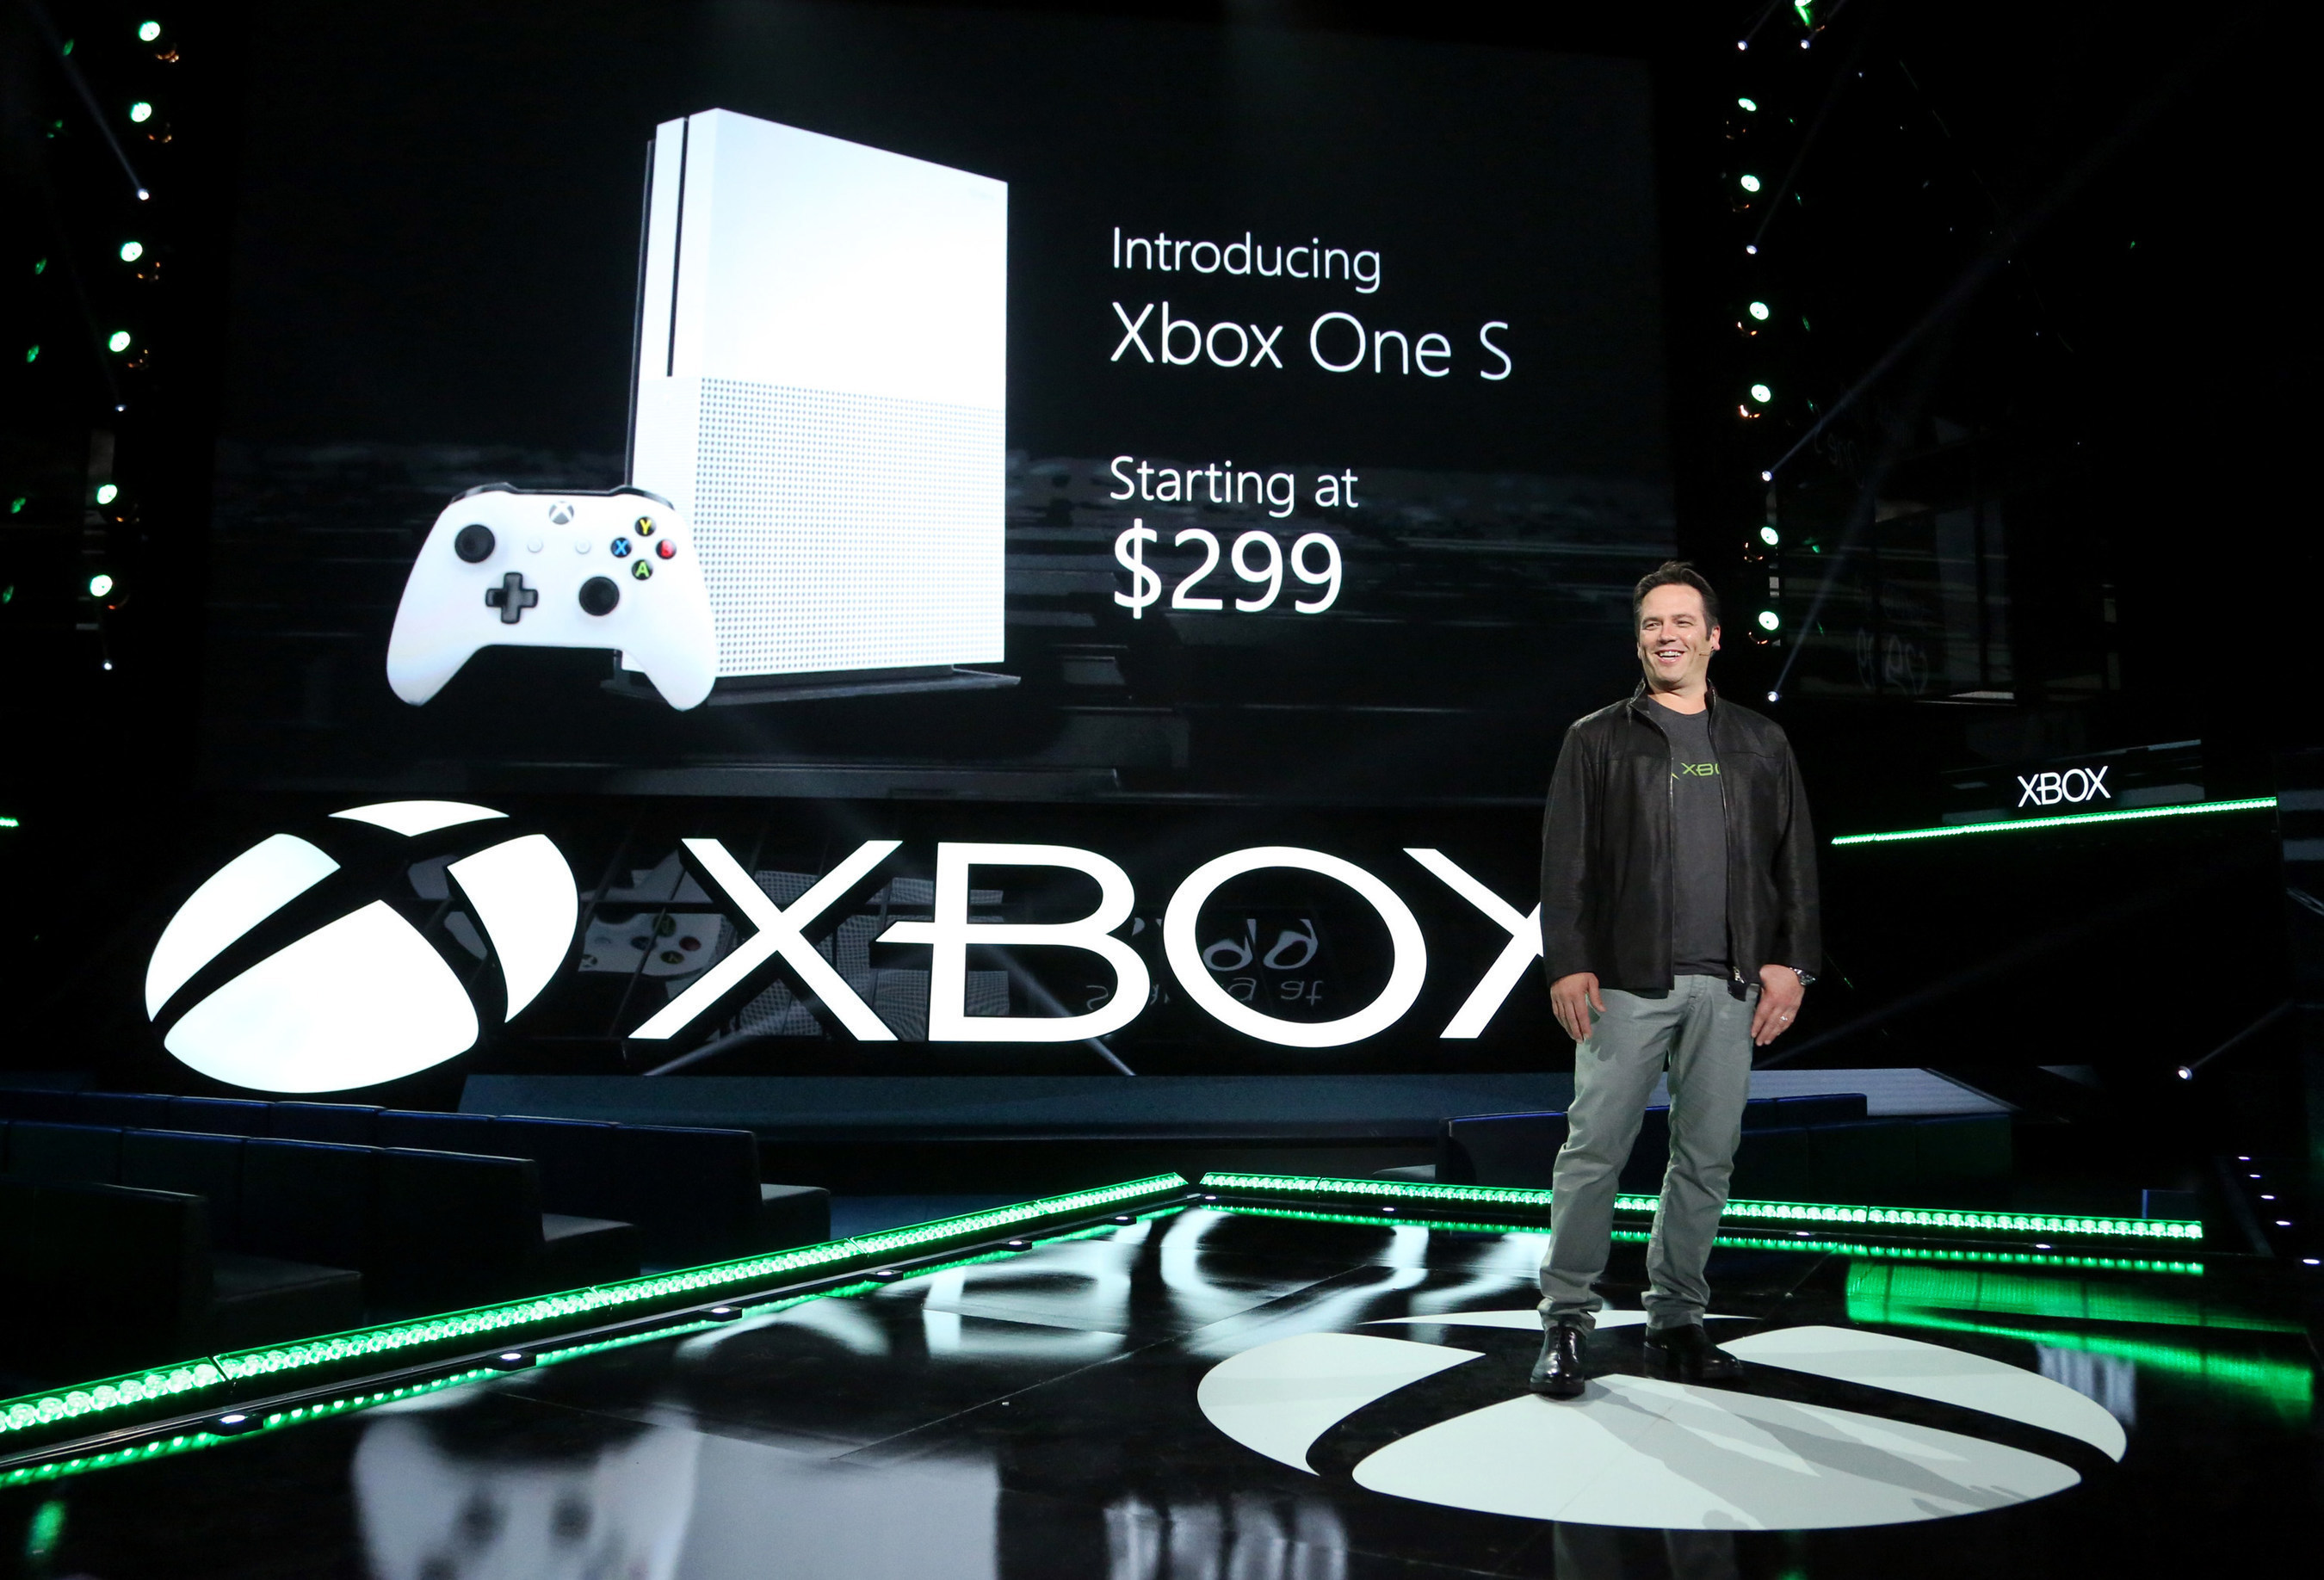 Microsoft debuts new Xbox One family of devices, Xbox Live features and biggest lineup of games in Xbox history.